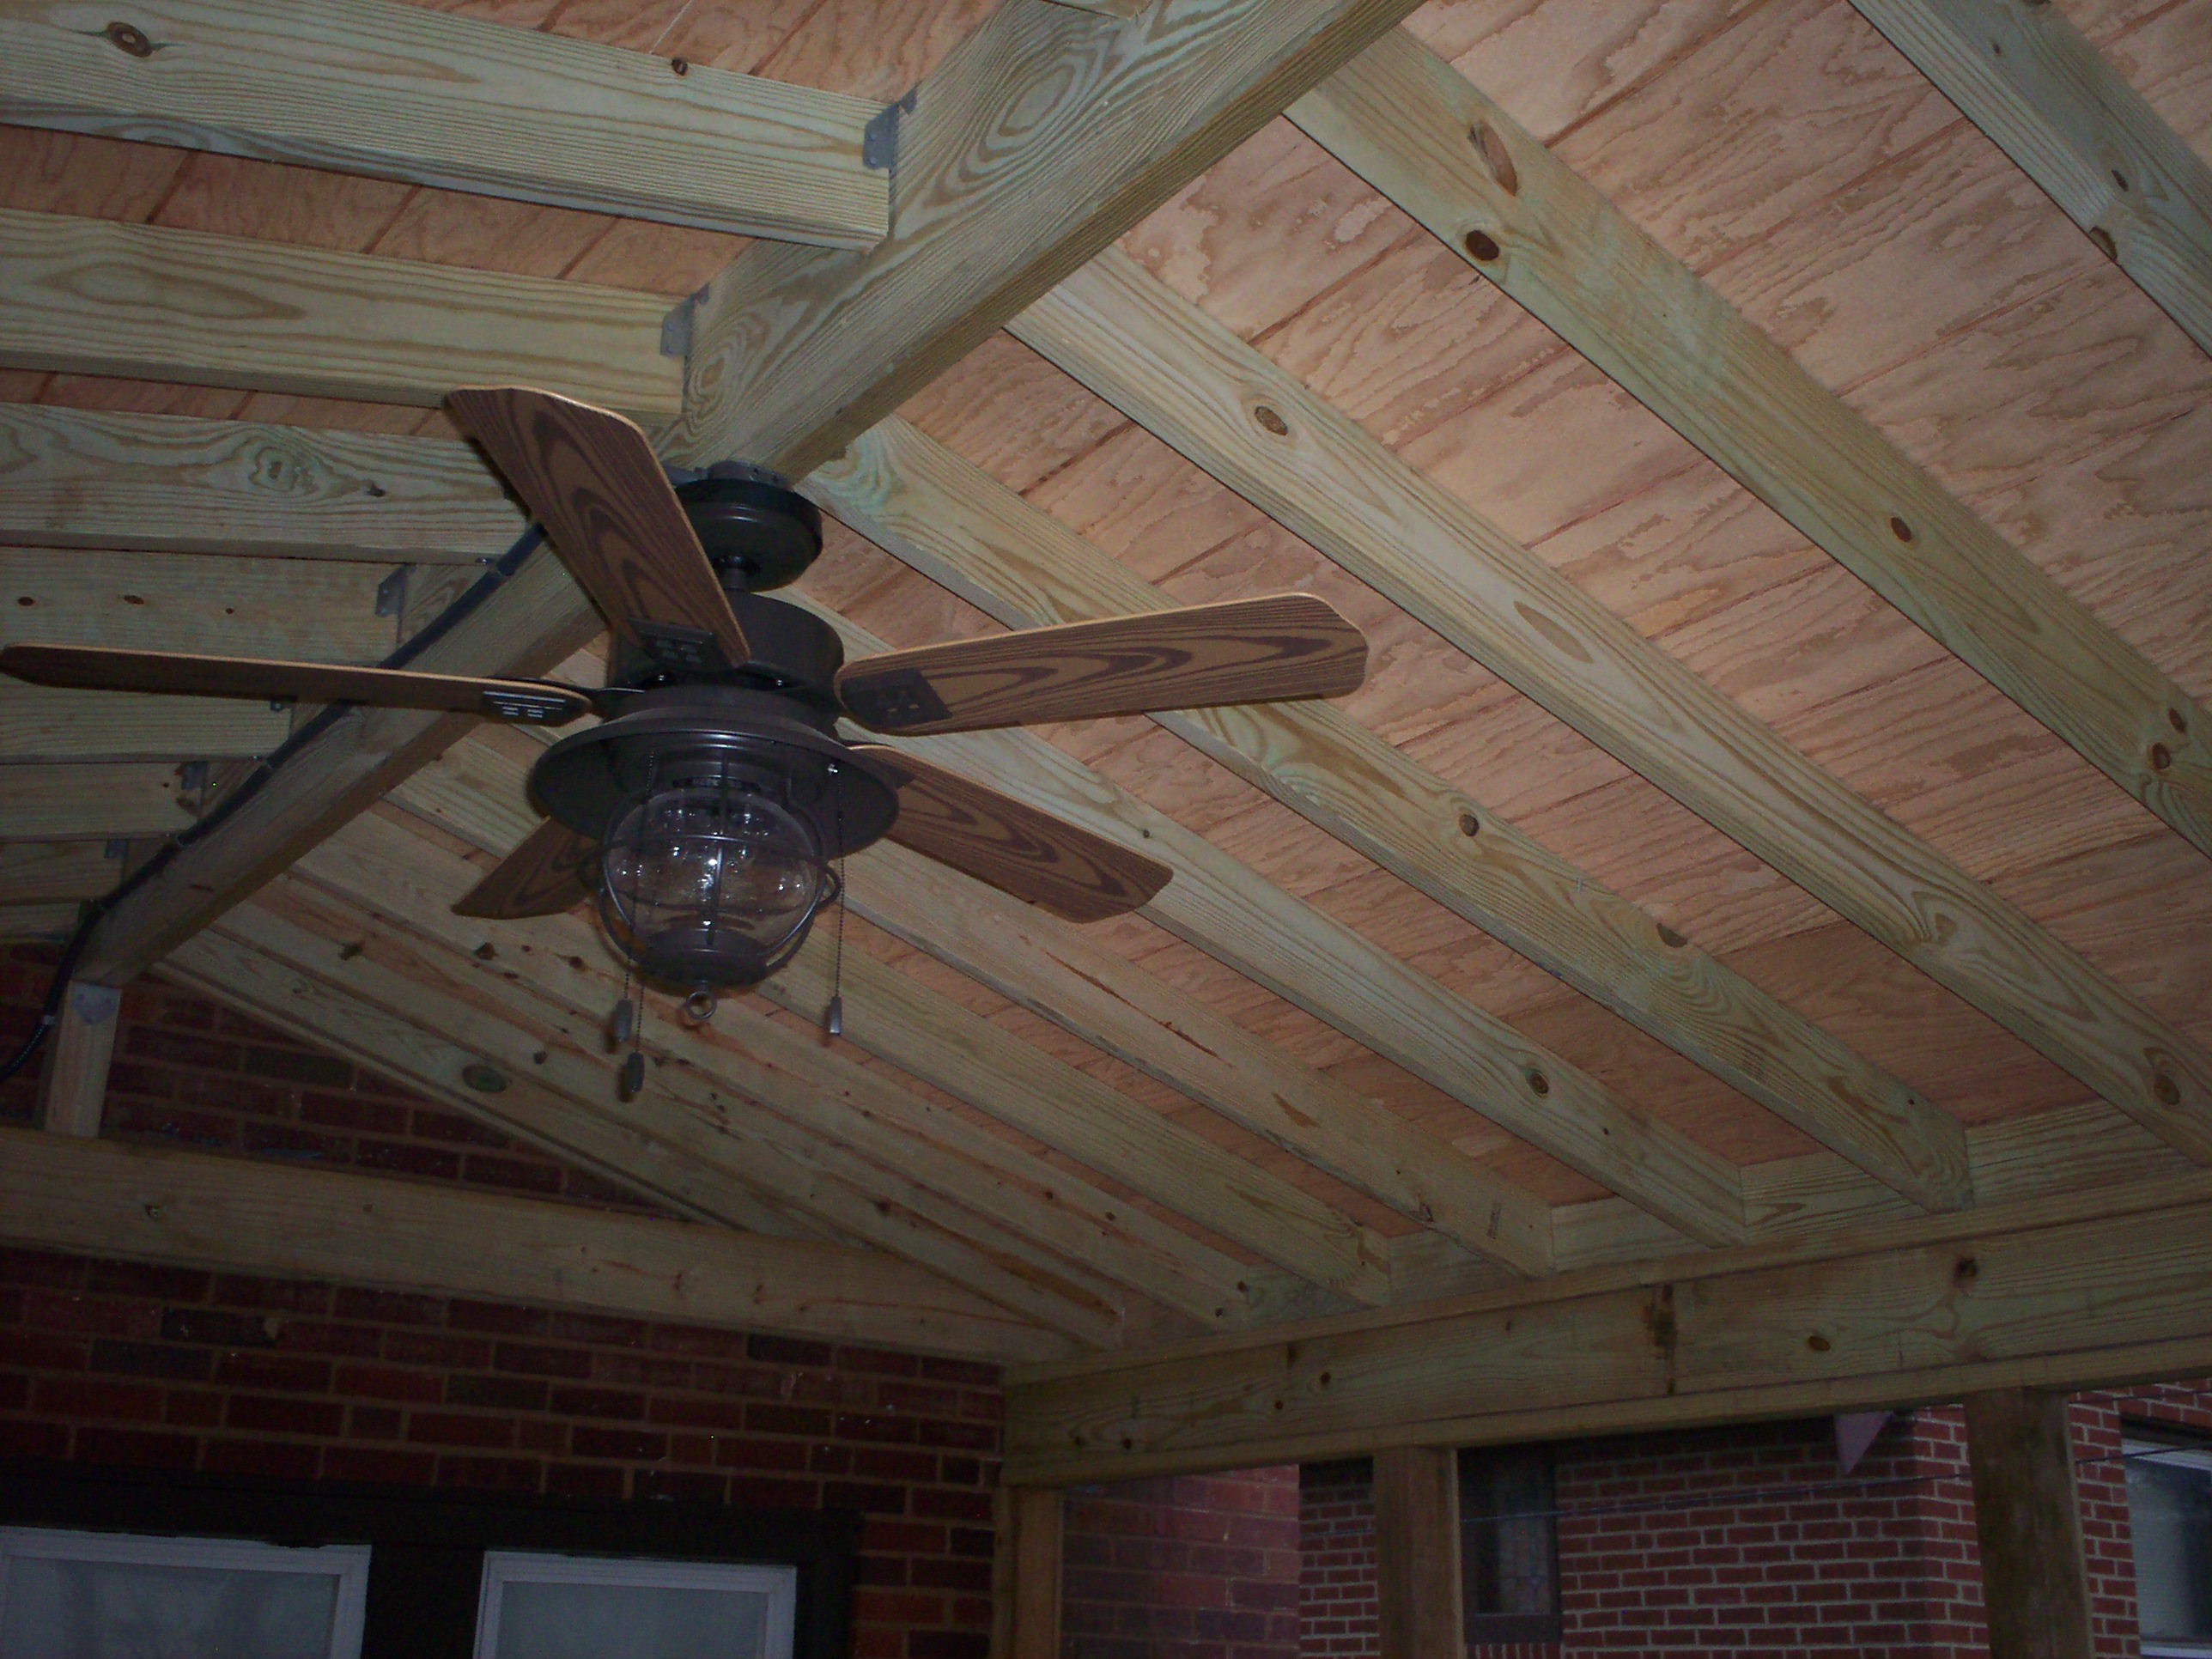 Merveilleux Ceiling Fan For Screened Porch And Deck, St. Louis, By Archadeck